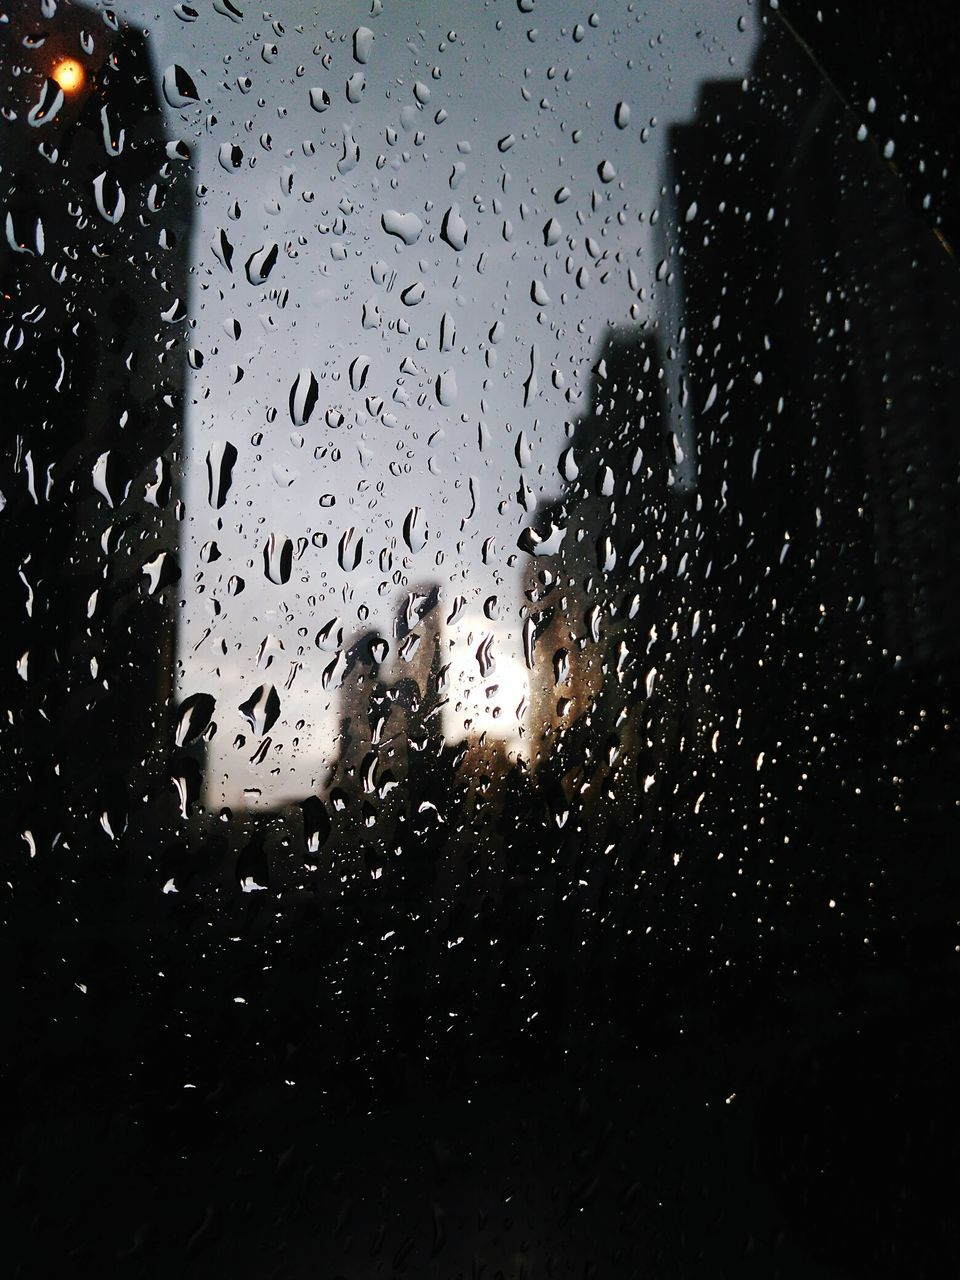 drop, window, wet, glass - material, rain, water, vehicle interior, rainy season, glass, raindrop, car interior, weather, car, indoors, no people, land vehicle, droplet, mode of transport, windshield, transportation, illuminated, looking through window, close-up, night, sky